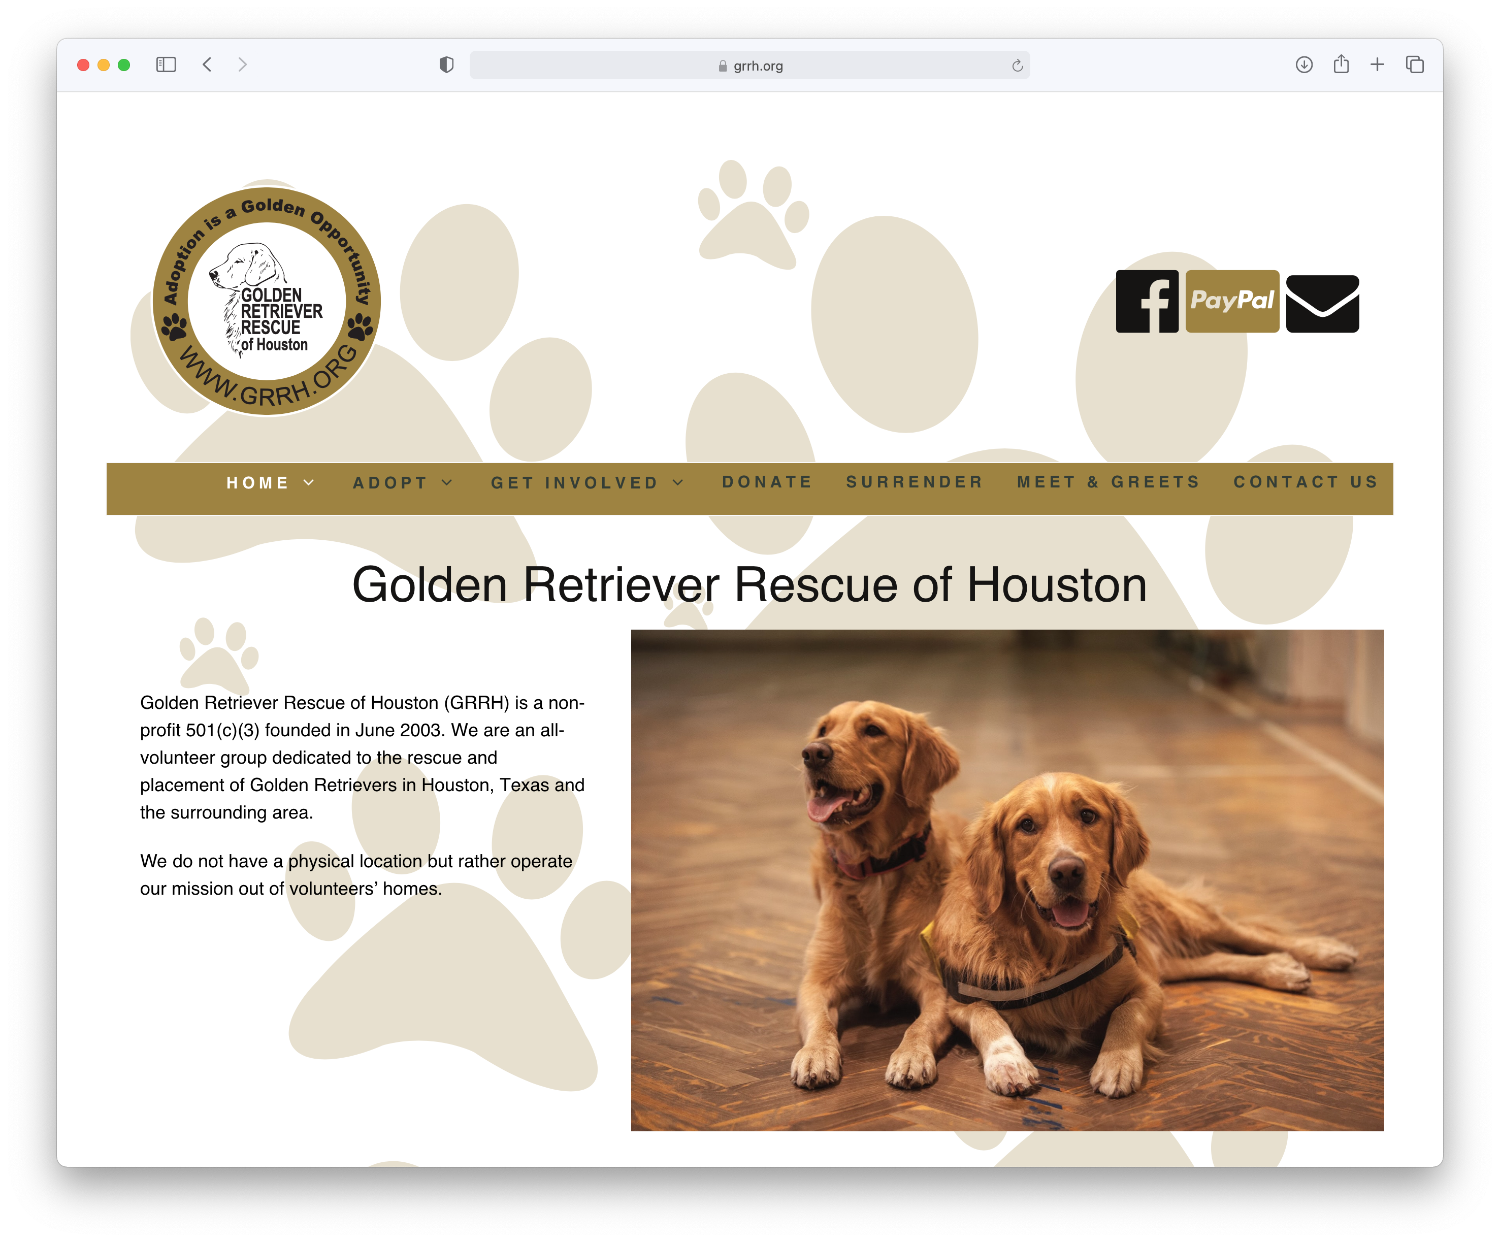 Golden Retriever Rescue of Houston website home page